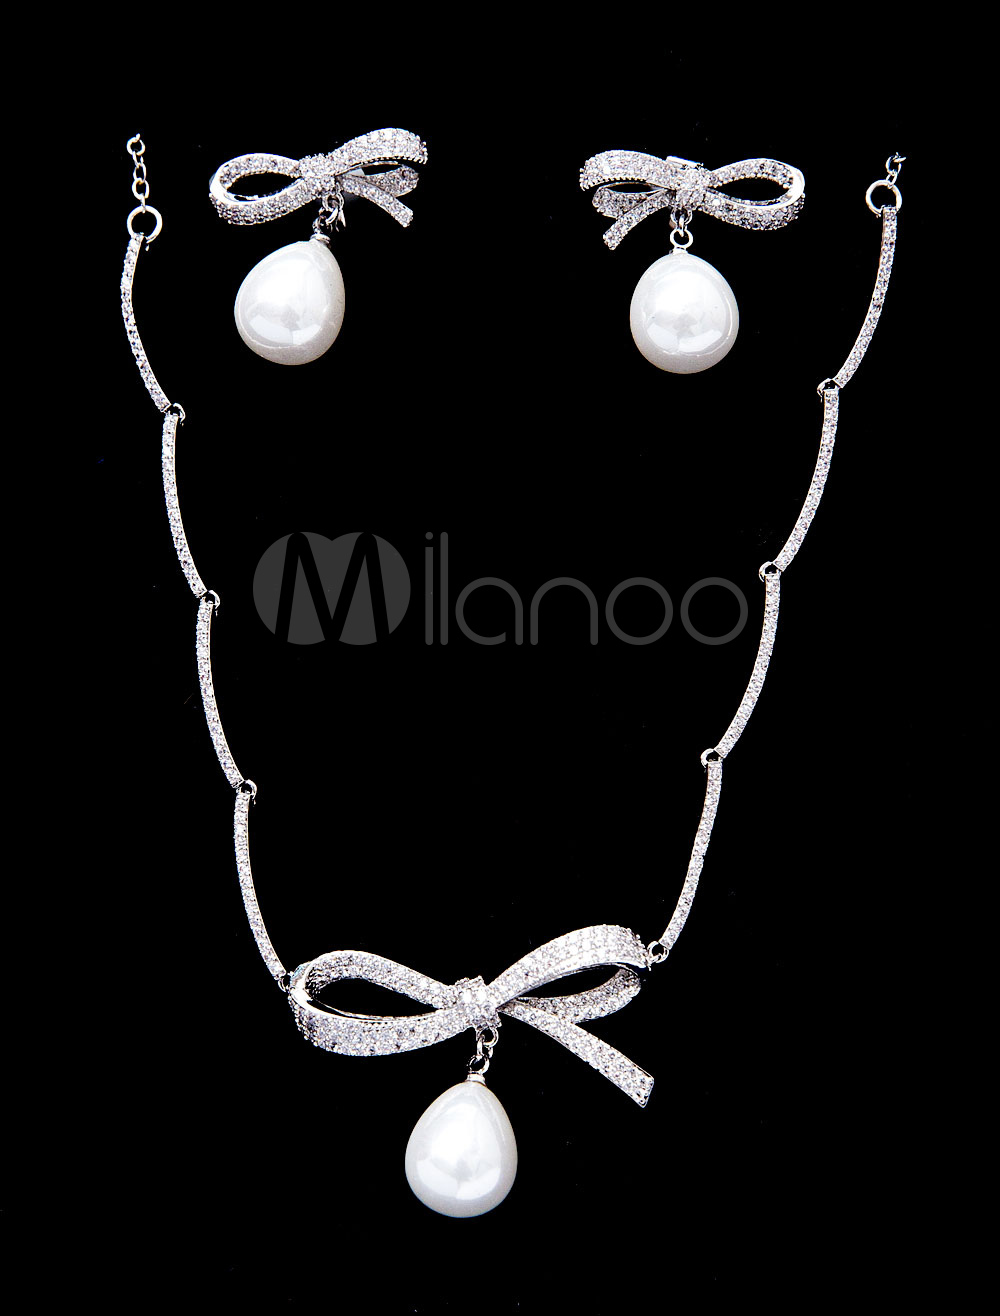 Wedding Jewelry Set Vintage Pears Beaded Bowknot Bridal Pendant Necklace With Drop Earrings